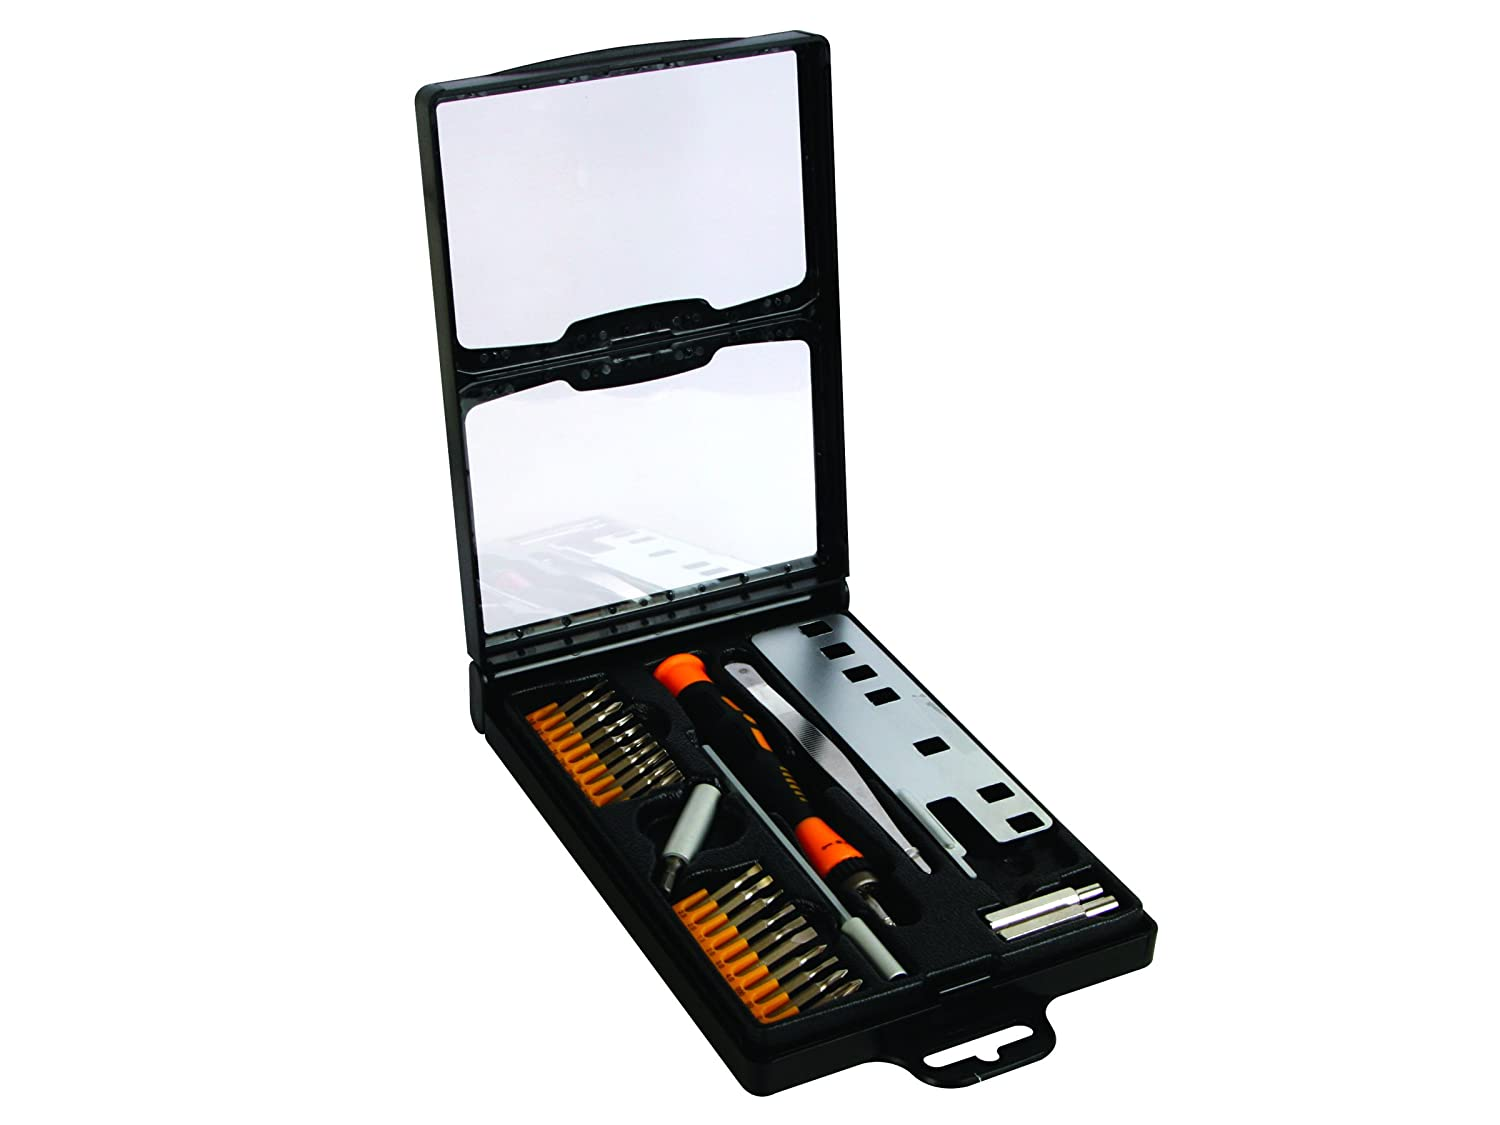 Amazon.com: Velleman VTSCRSET20 Tool Kit For Gaming Console Applications by Velleman: Everything Else